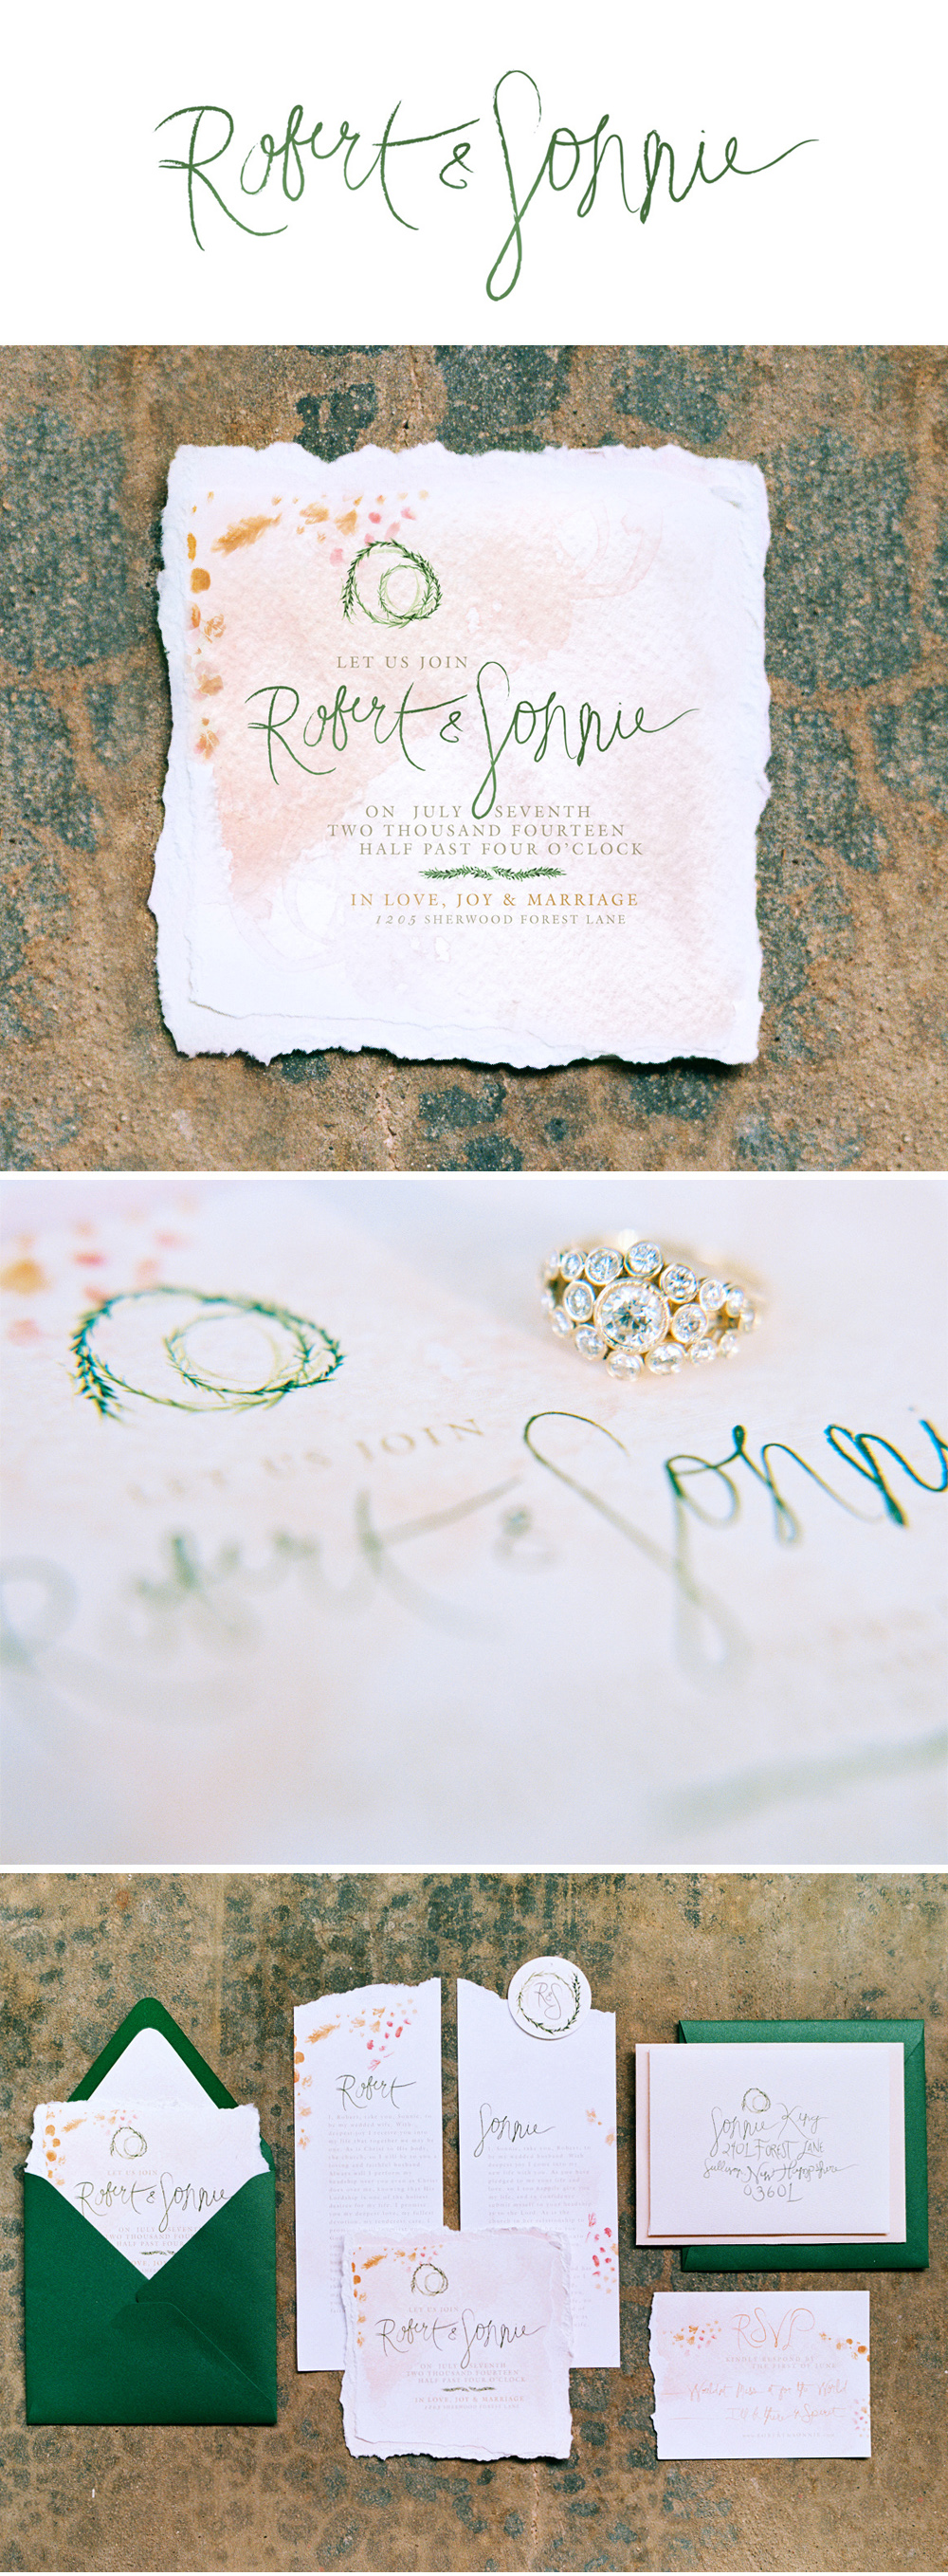 Styled Wedding Suite